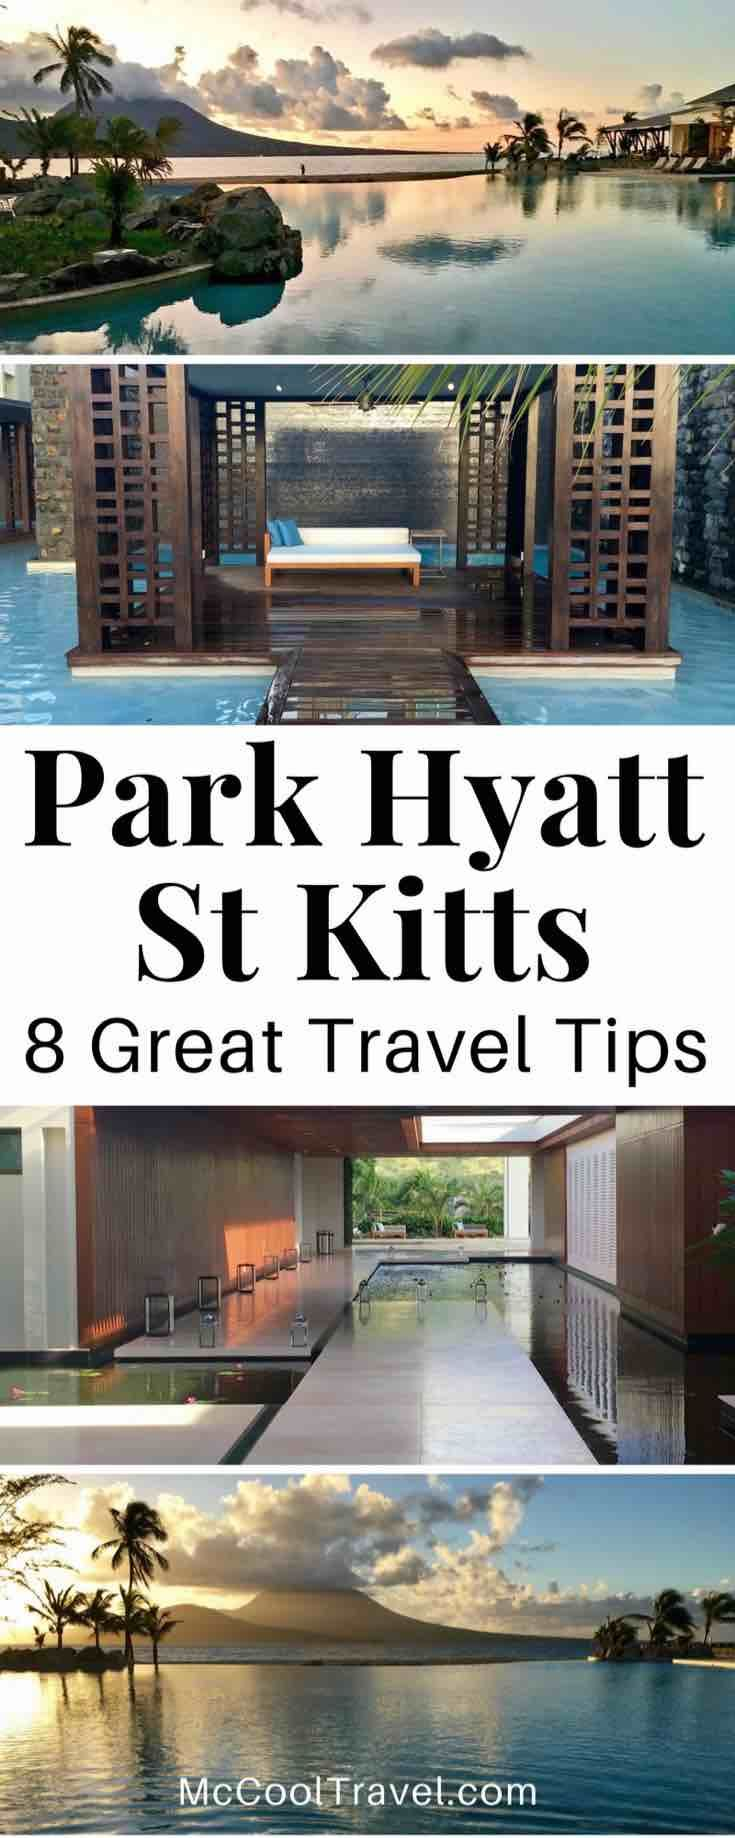 Park Hyatt St Kitts | St Kitts luxury lodging | Caribbean luxury resort | where to stay St Kitts | Christophe Harbour | what to pack, what to expect, secret places to visit, at the spectacular Park Hyatt St. Kitts in West Indies, Caribbean.